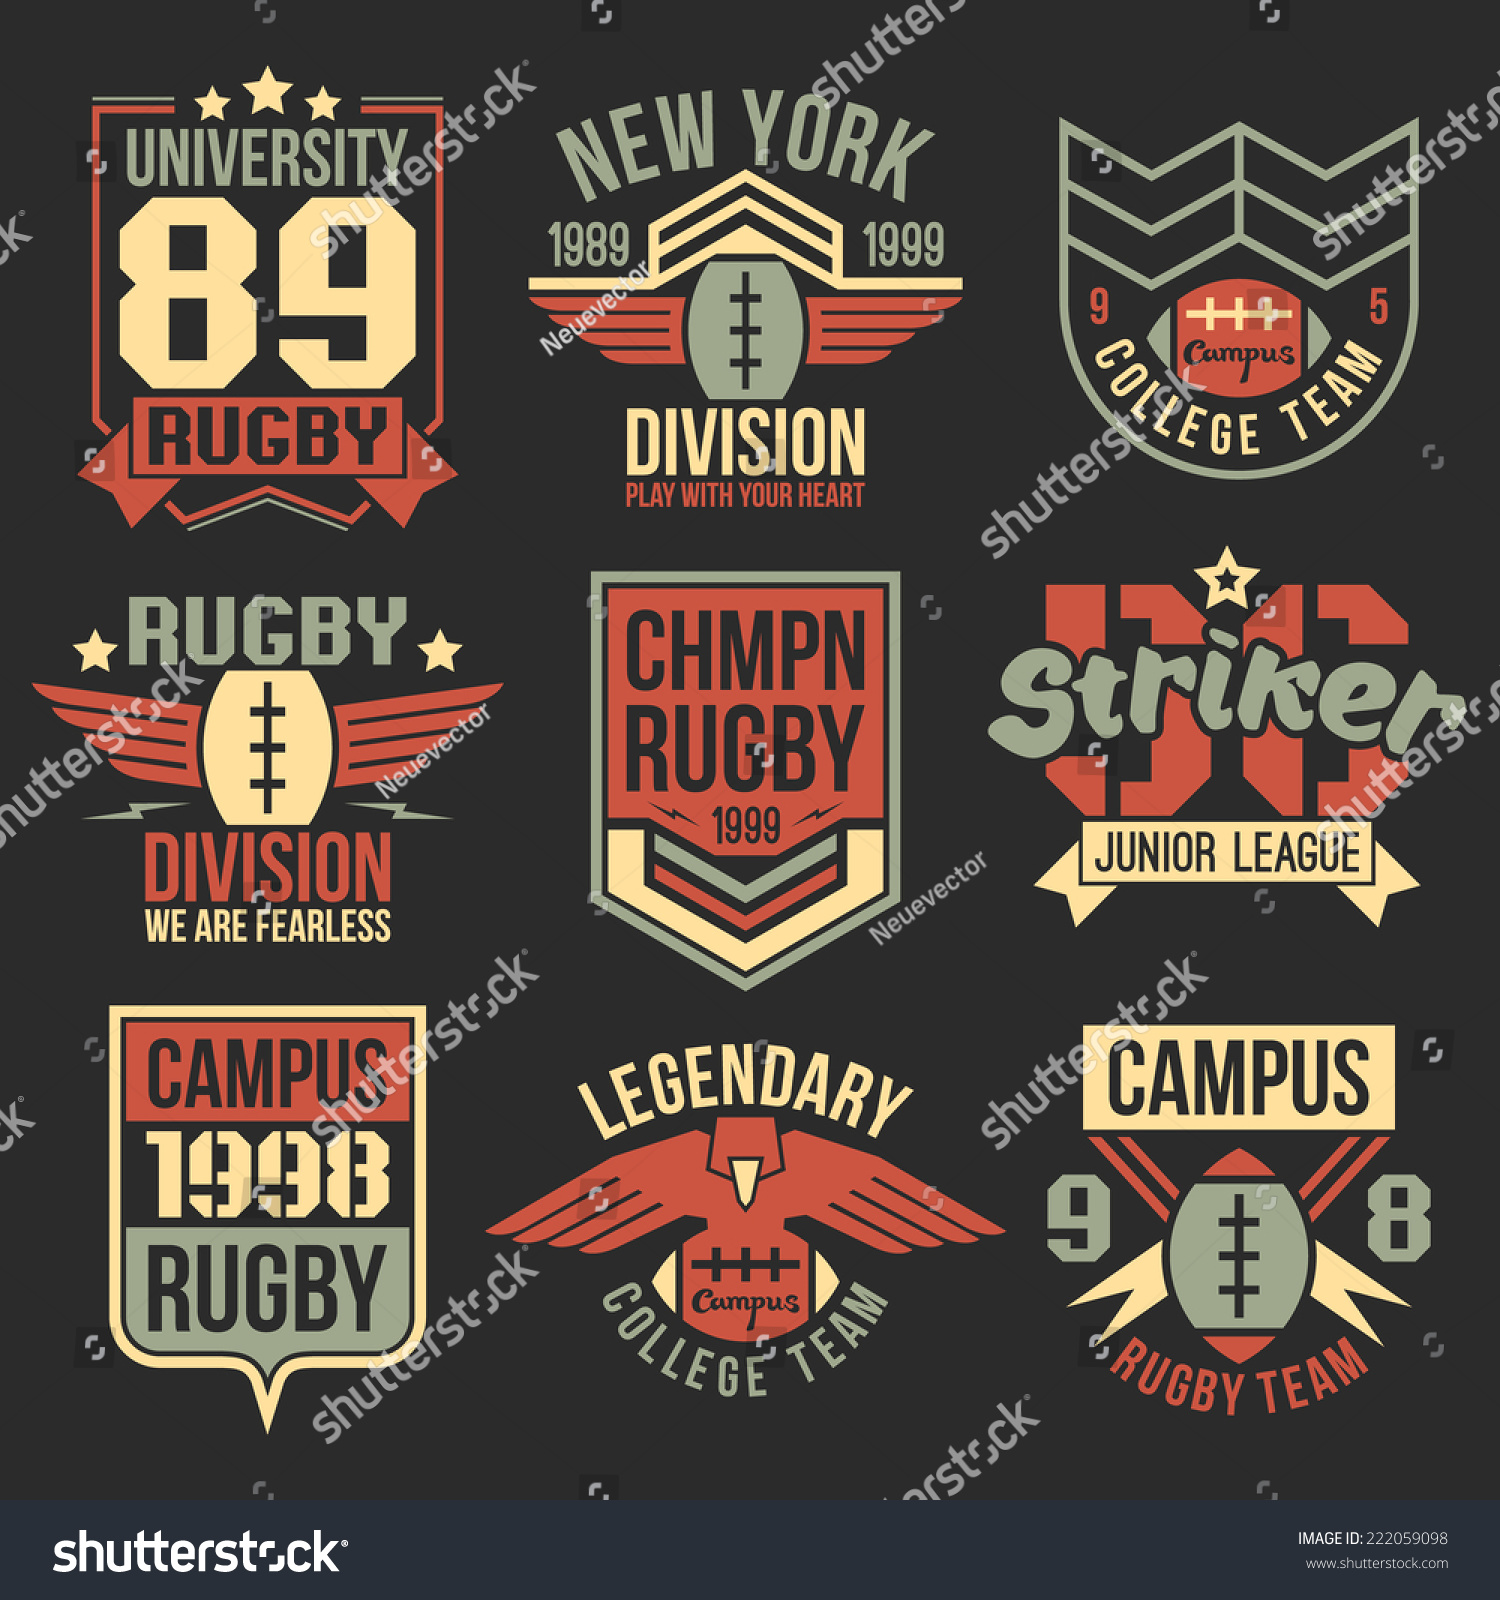 Design t shirt vintage - College Rugby Team Emblems In Retro Vintage Style Graphic Design For T Shirt